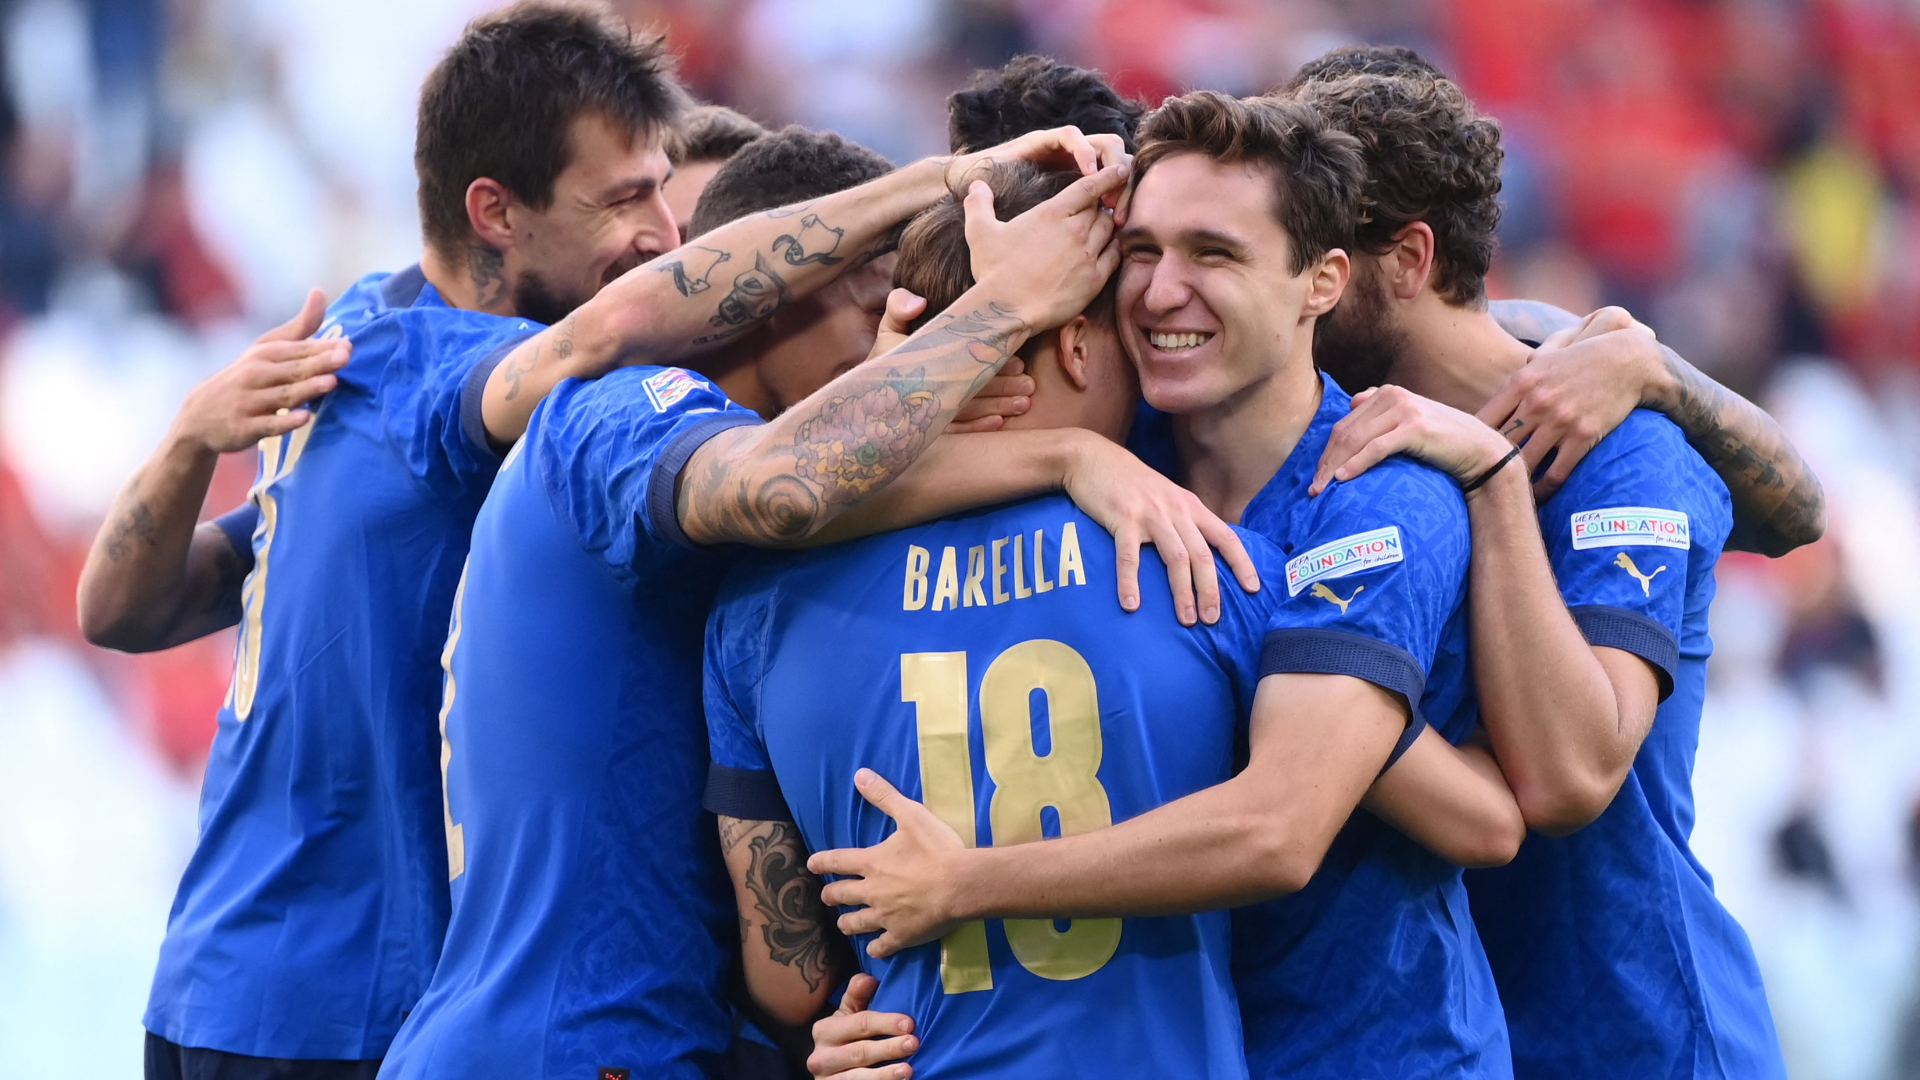 Italy-Belgium (2-1): the Nazionale console themselves with 3rd place